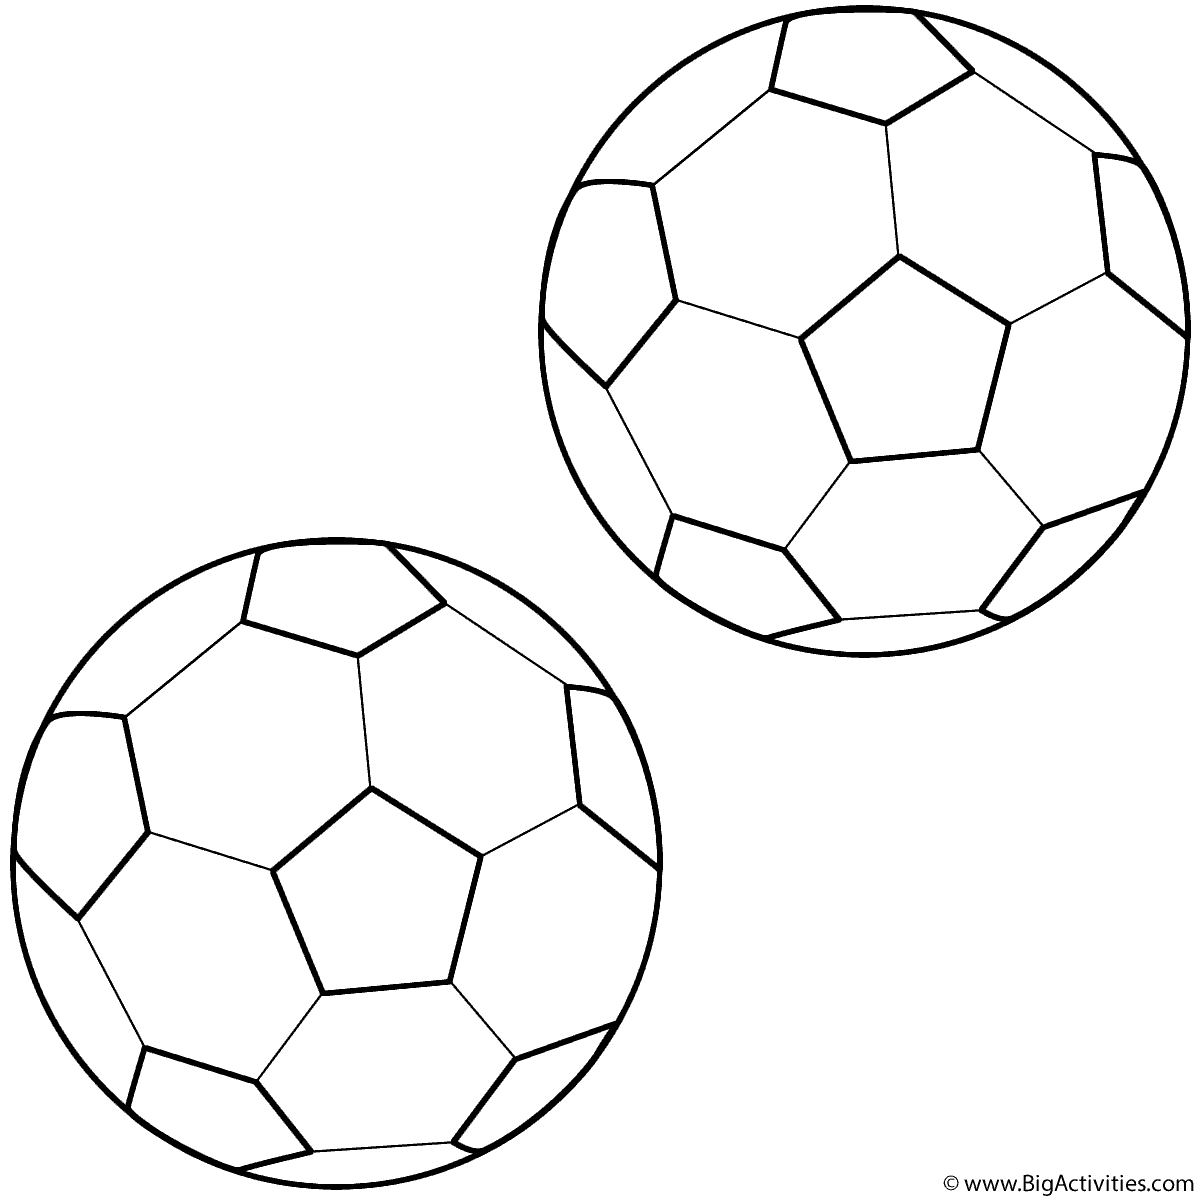 colouring picture of a ball ball coloring page super simple of picture ball a colouring